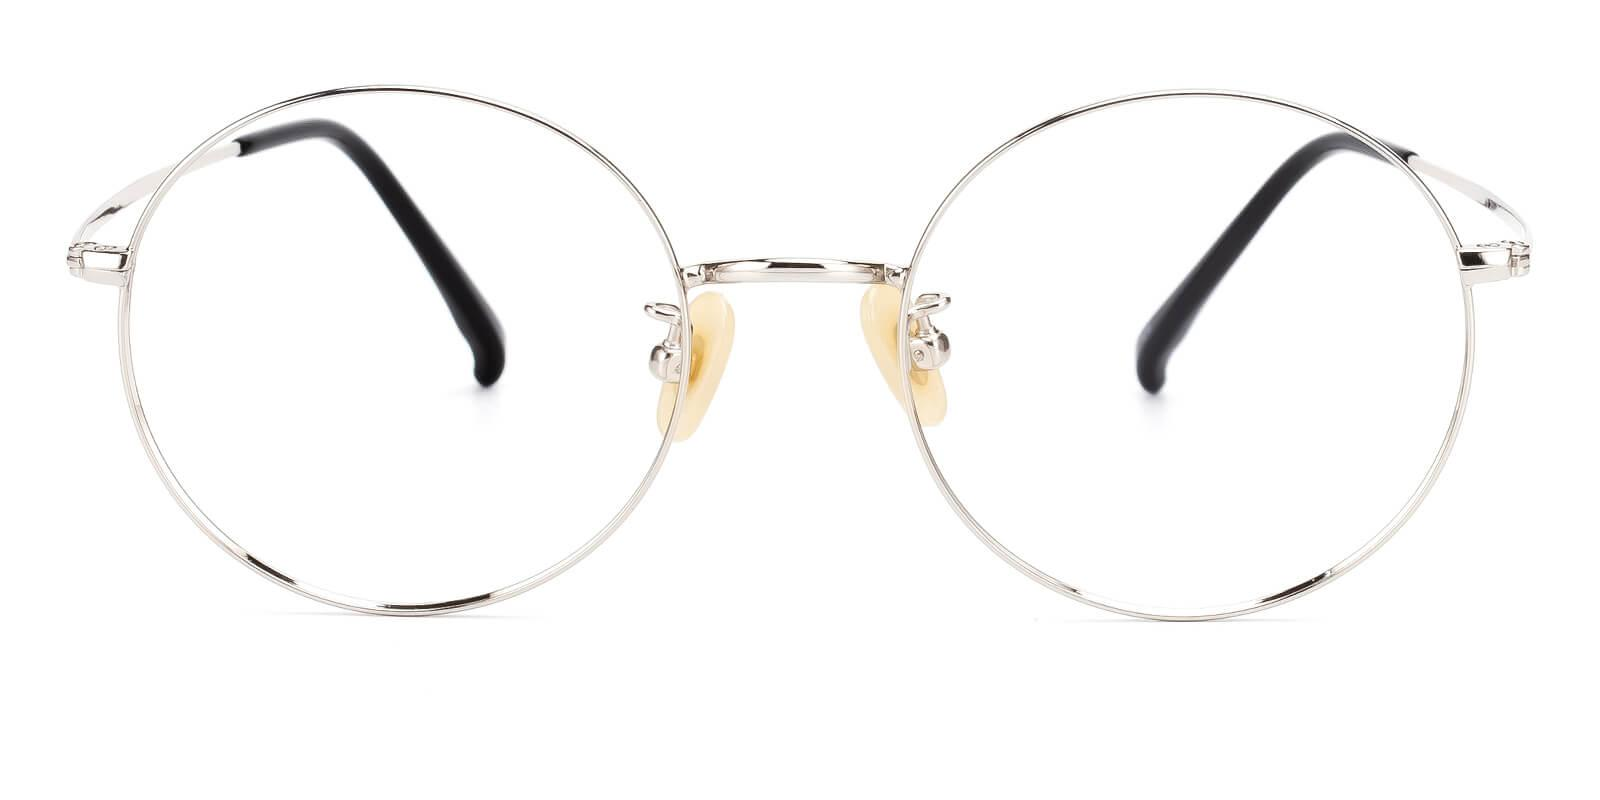 Theenity-Silver-Round-Titanium-Eyeglasses-additional2